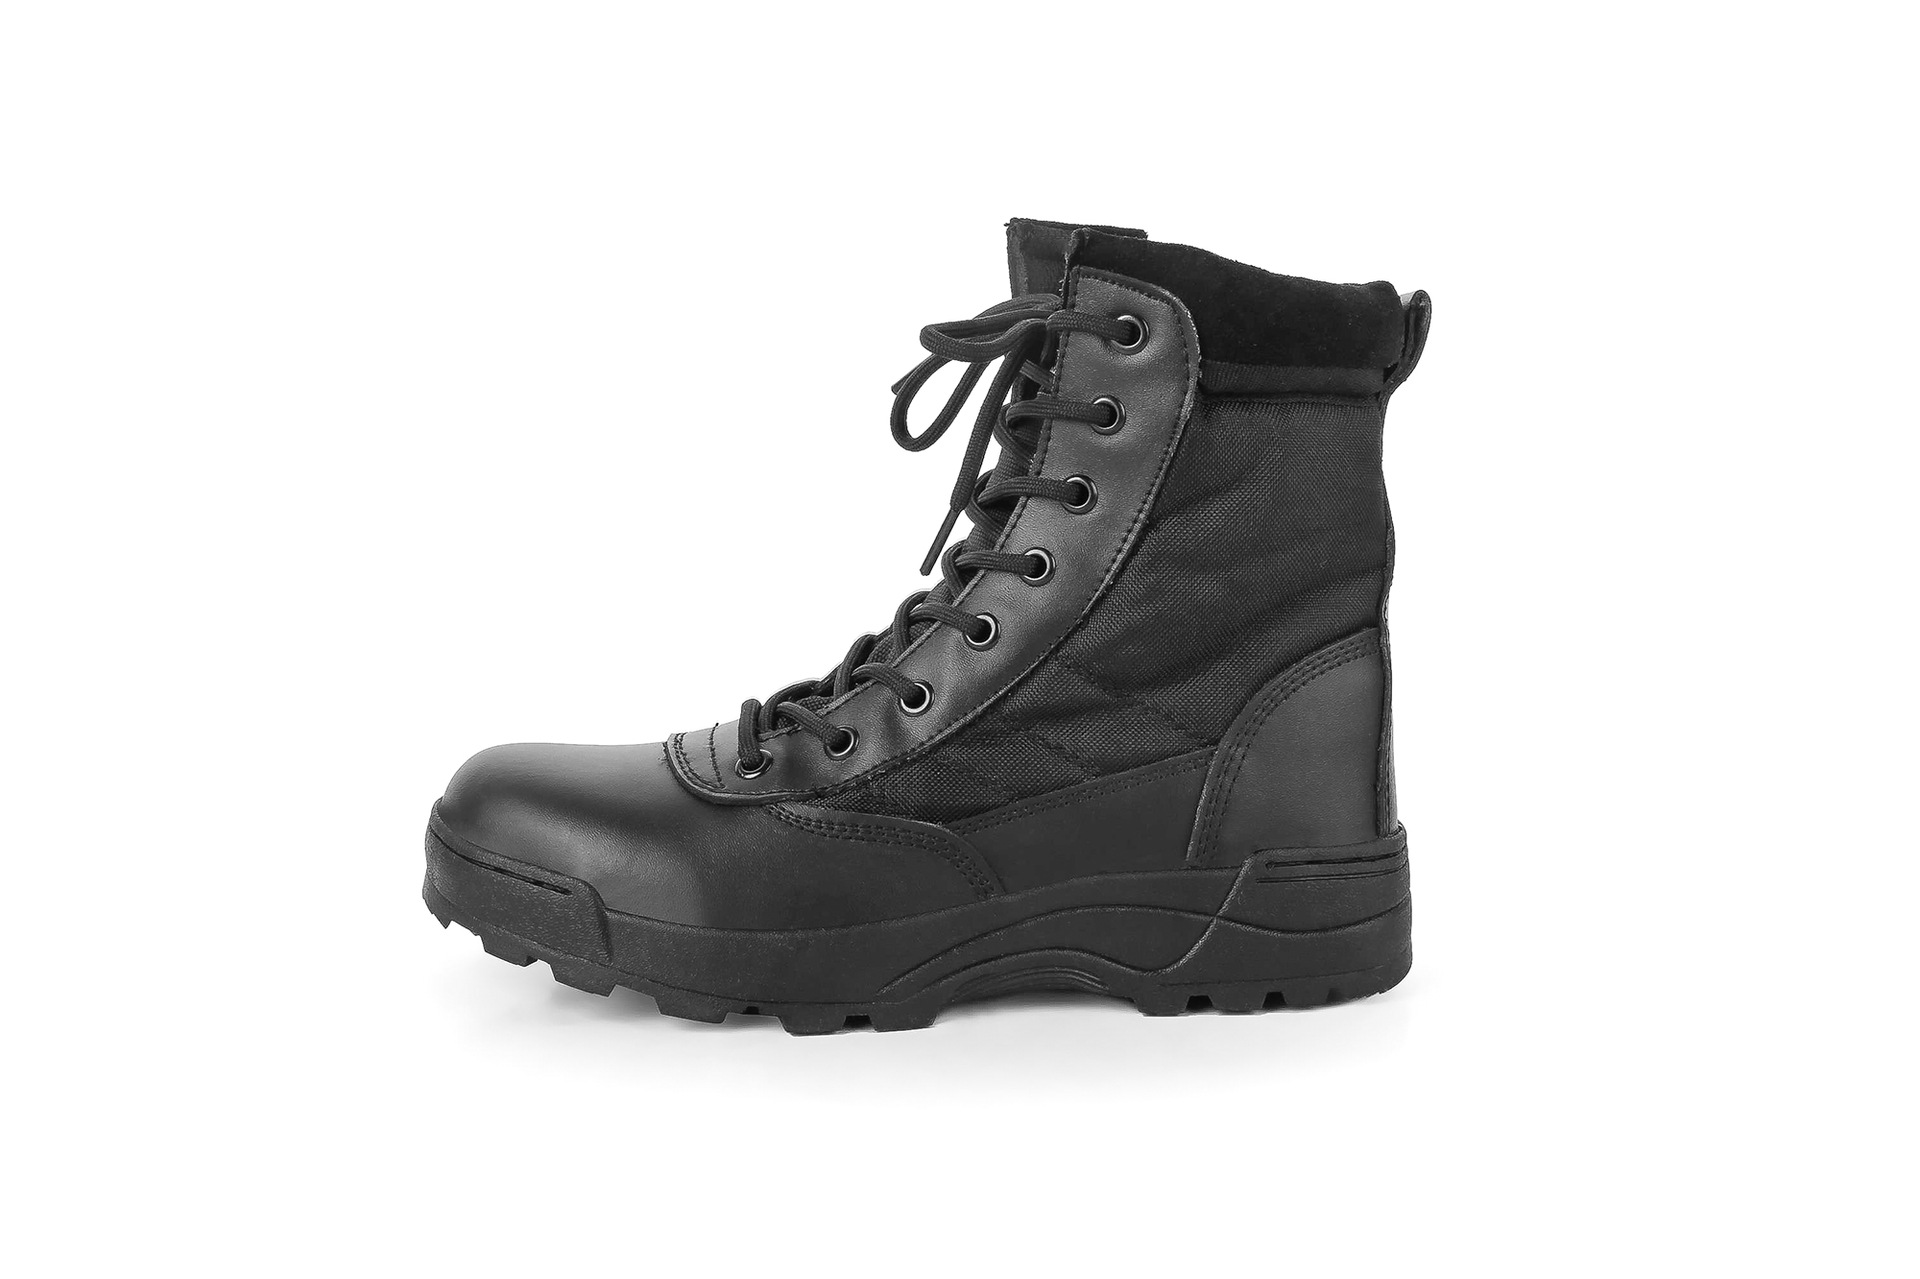 Ultra-Light For Combat Boots Amu Ultra-Light For Combat Boots SFB Combat Boots Canvas Breathable CS Hight-top For Combat Boots